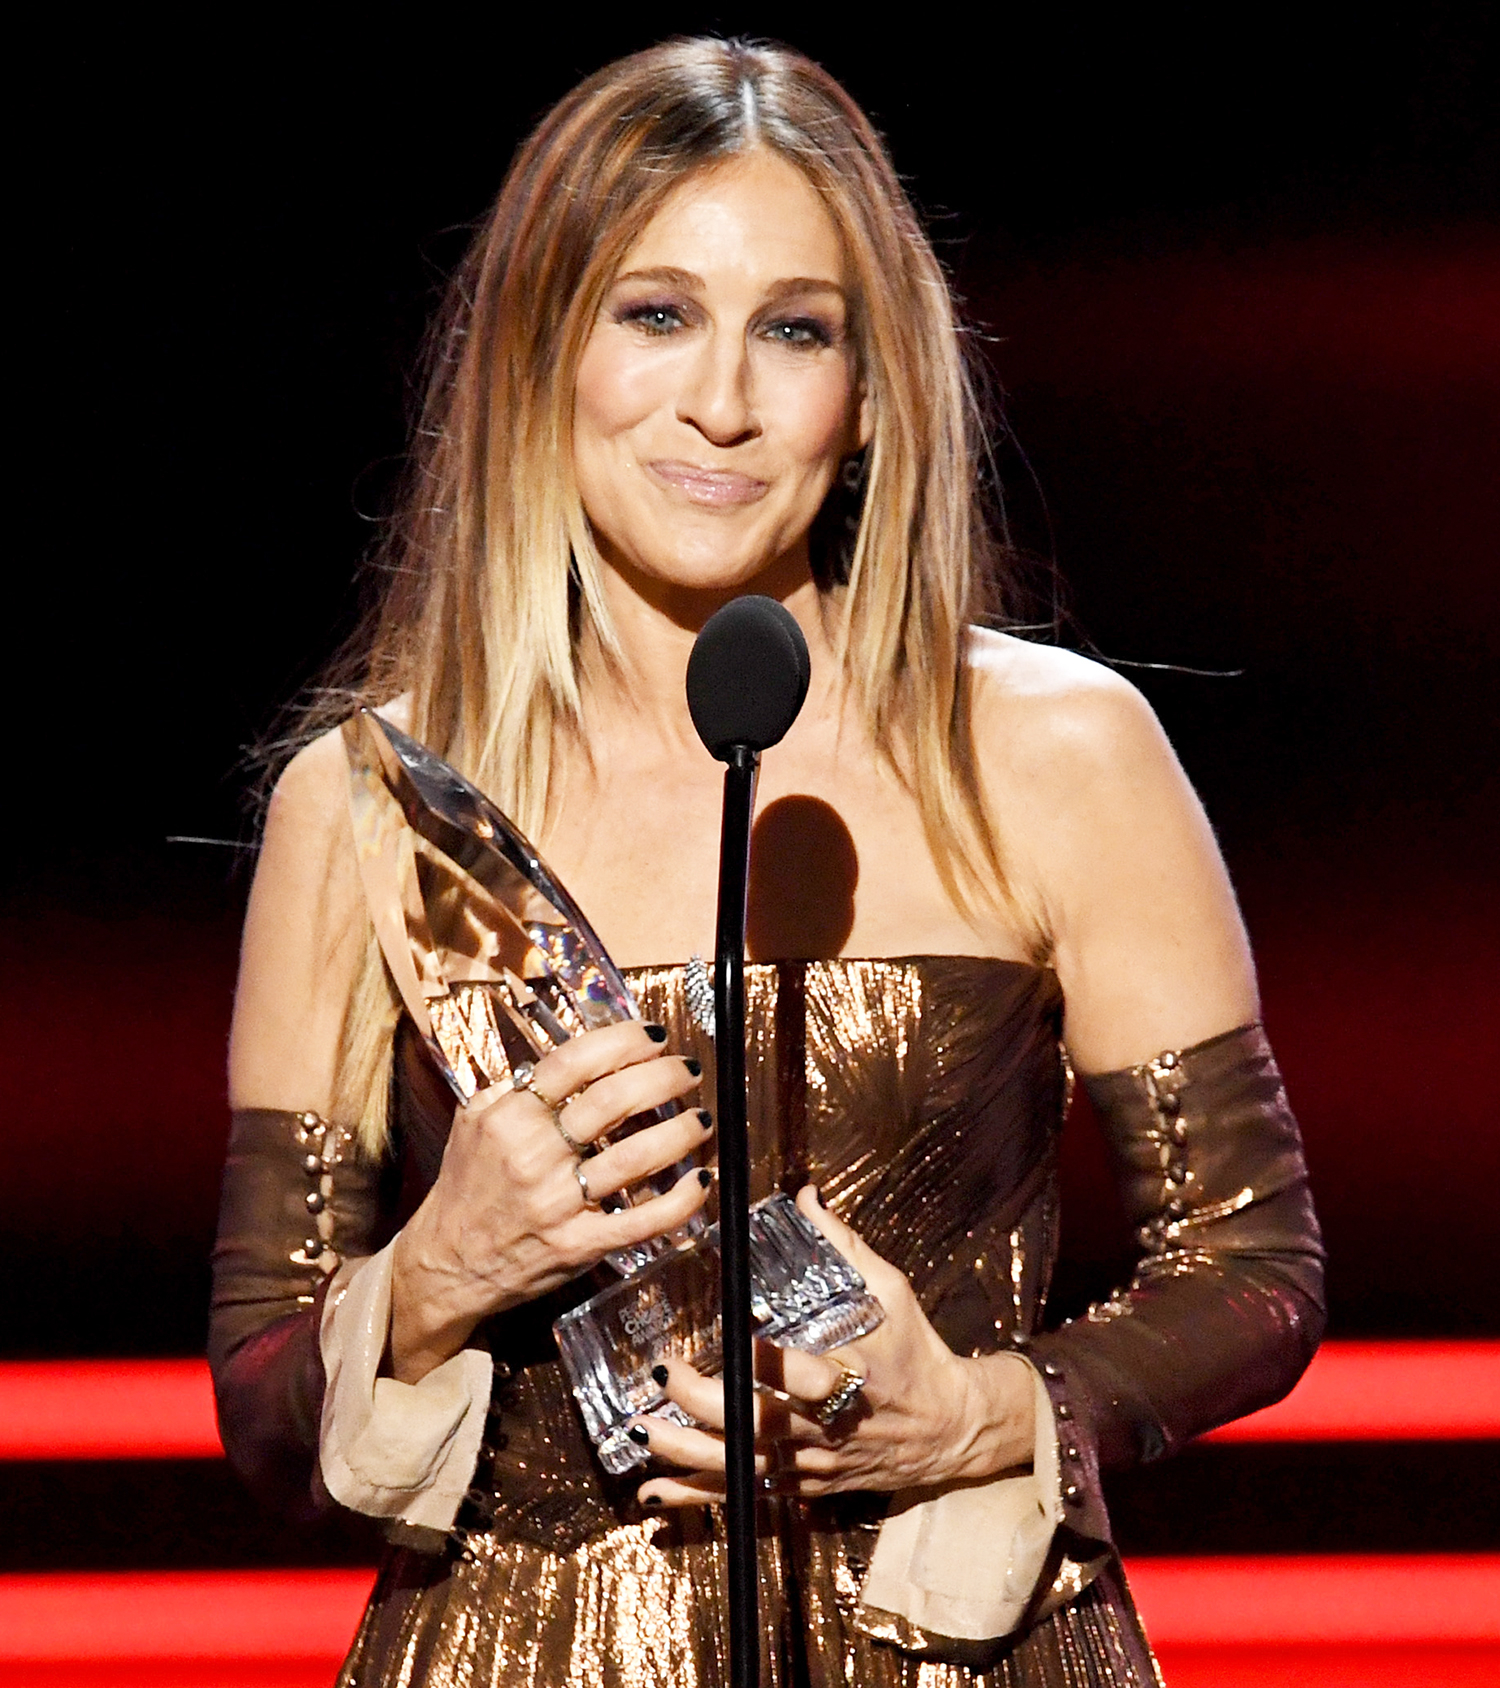 Sarah Jessica Parker accepts Favorite Premium Series Actress for 'Divorce' onstage during the People's Choice Awards 2017 at Microsoft Theater on January 18, 2017 in Los Angeles, California.